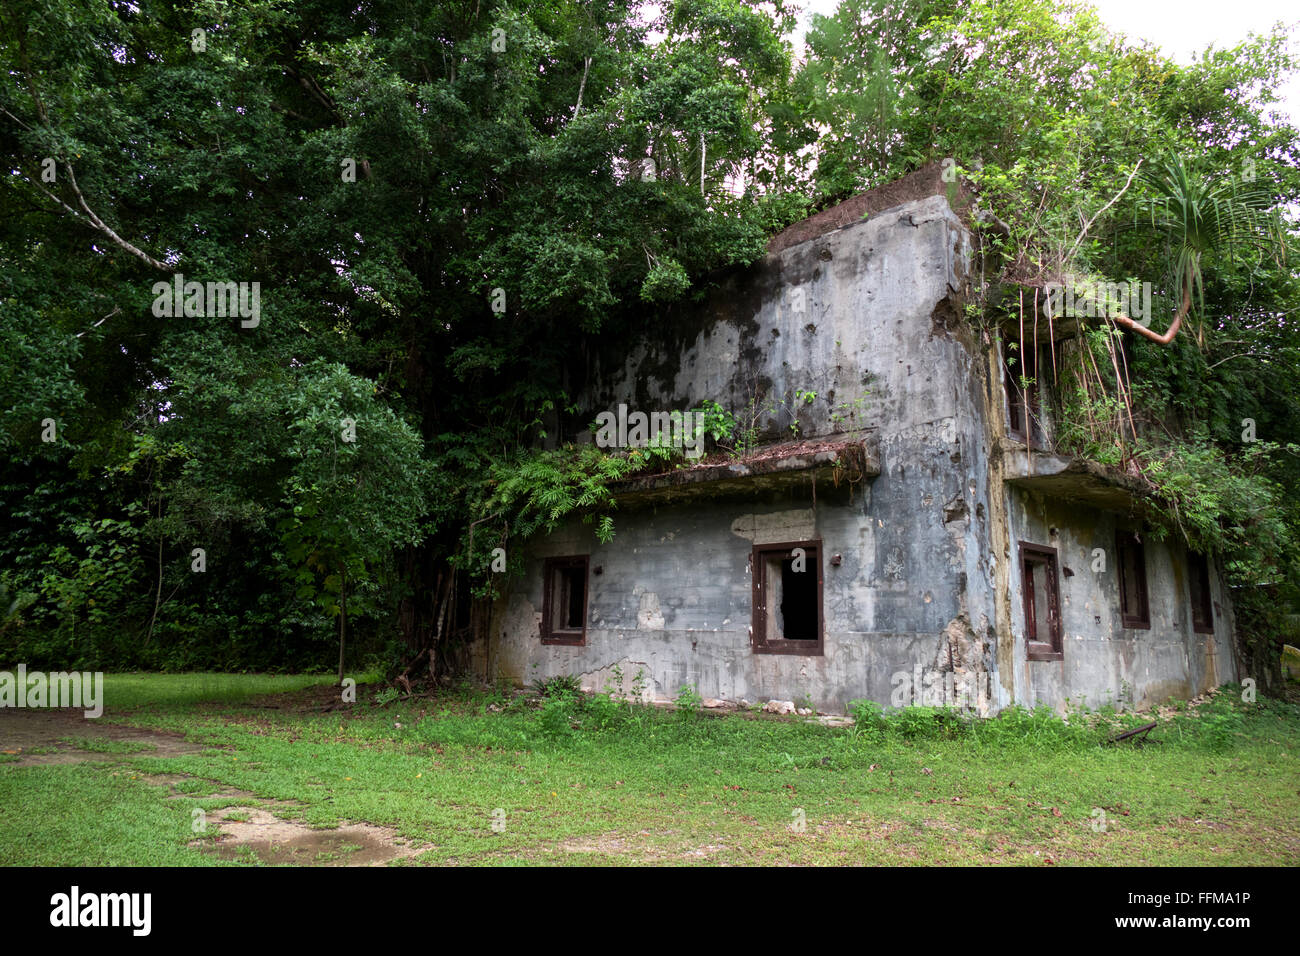 Old military building in jungle. Battle of Peleliu, Palau 1944 (Operation Stalemate II) between the US and Japan - Stock Image